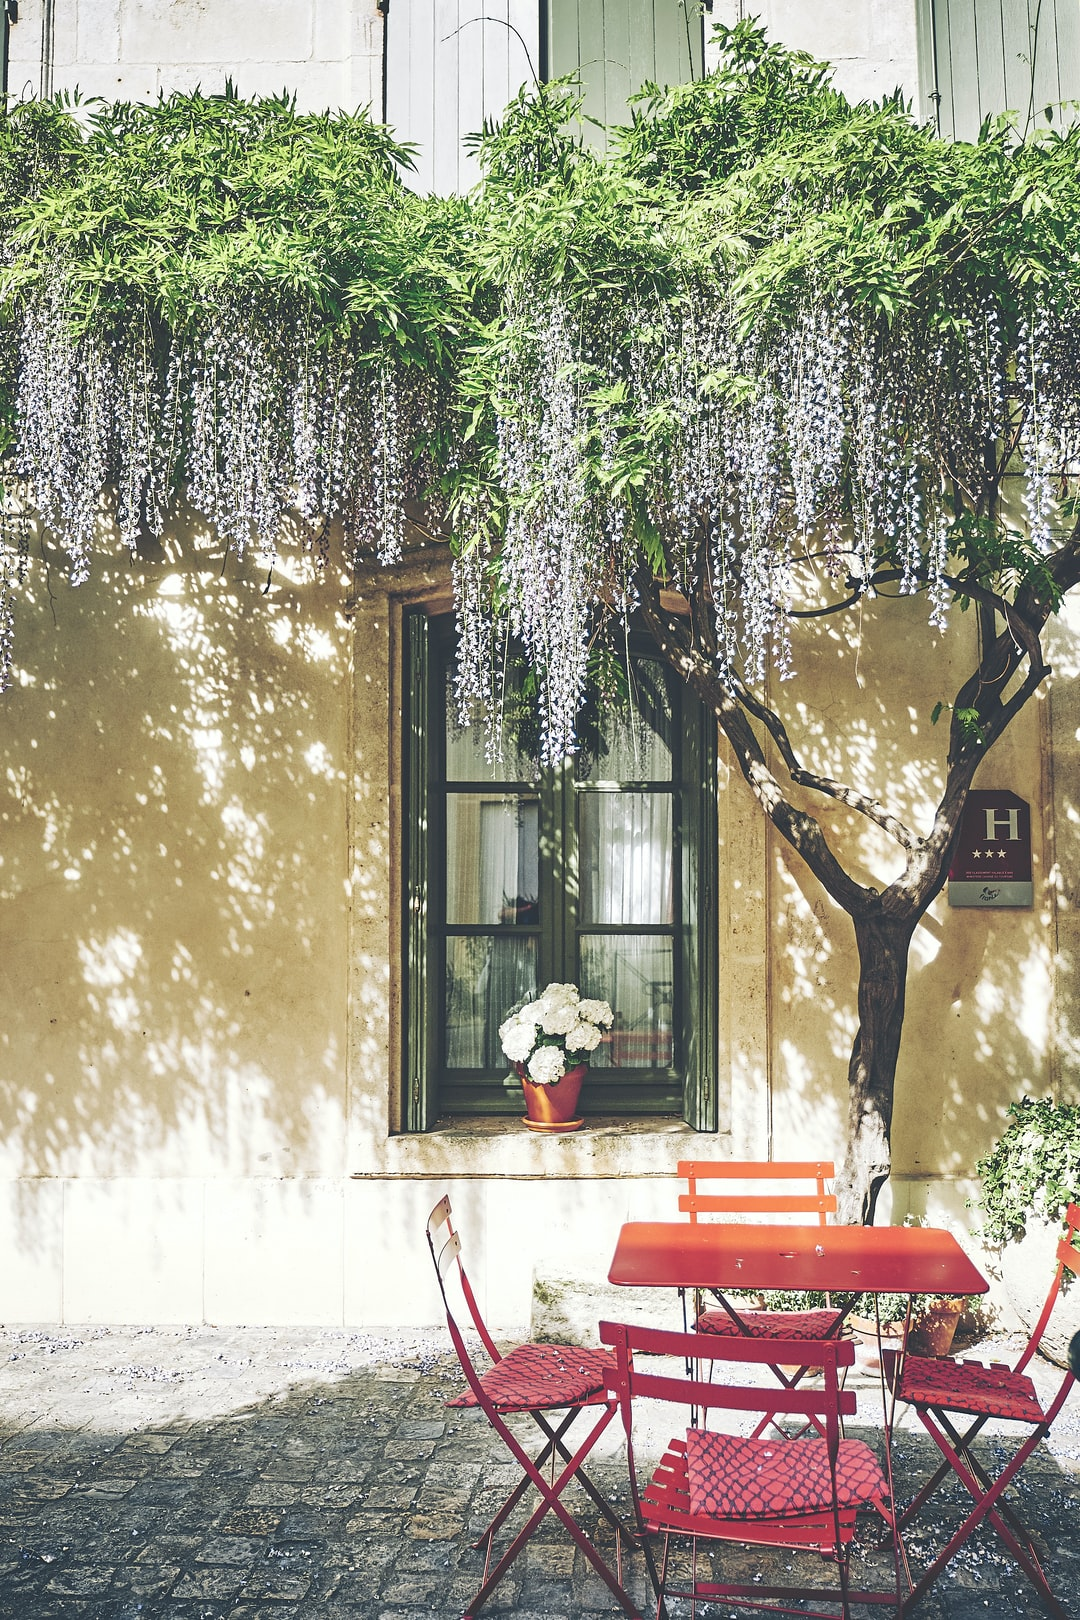 This tiny terrace of an hotel of Aigues Mortes in Camargue is an invite to have a seat an rest enjoying the cool breeze under the shades of a flowered tree.